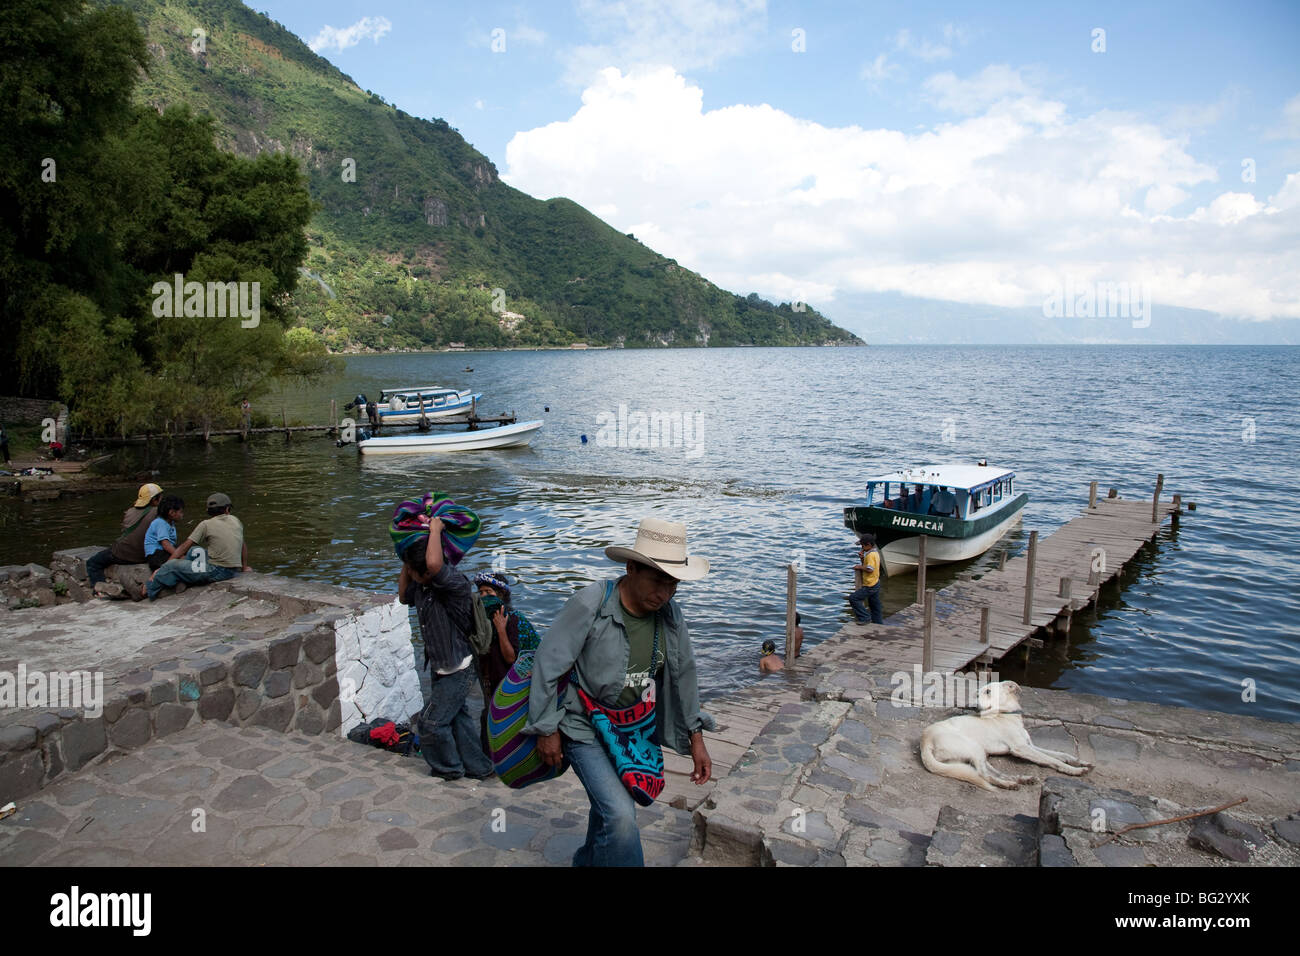 Landing Stage of Tzununa at Lake Atitlan Guatemala. - Stock Image